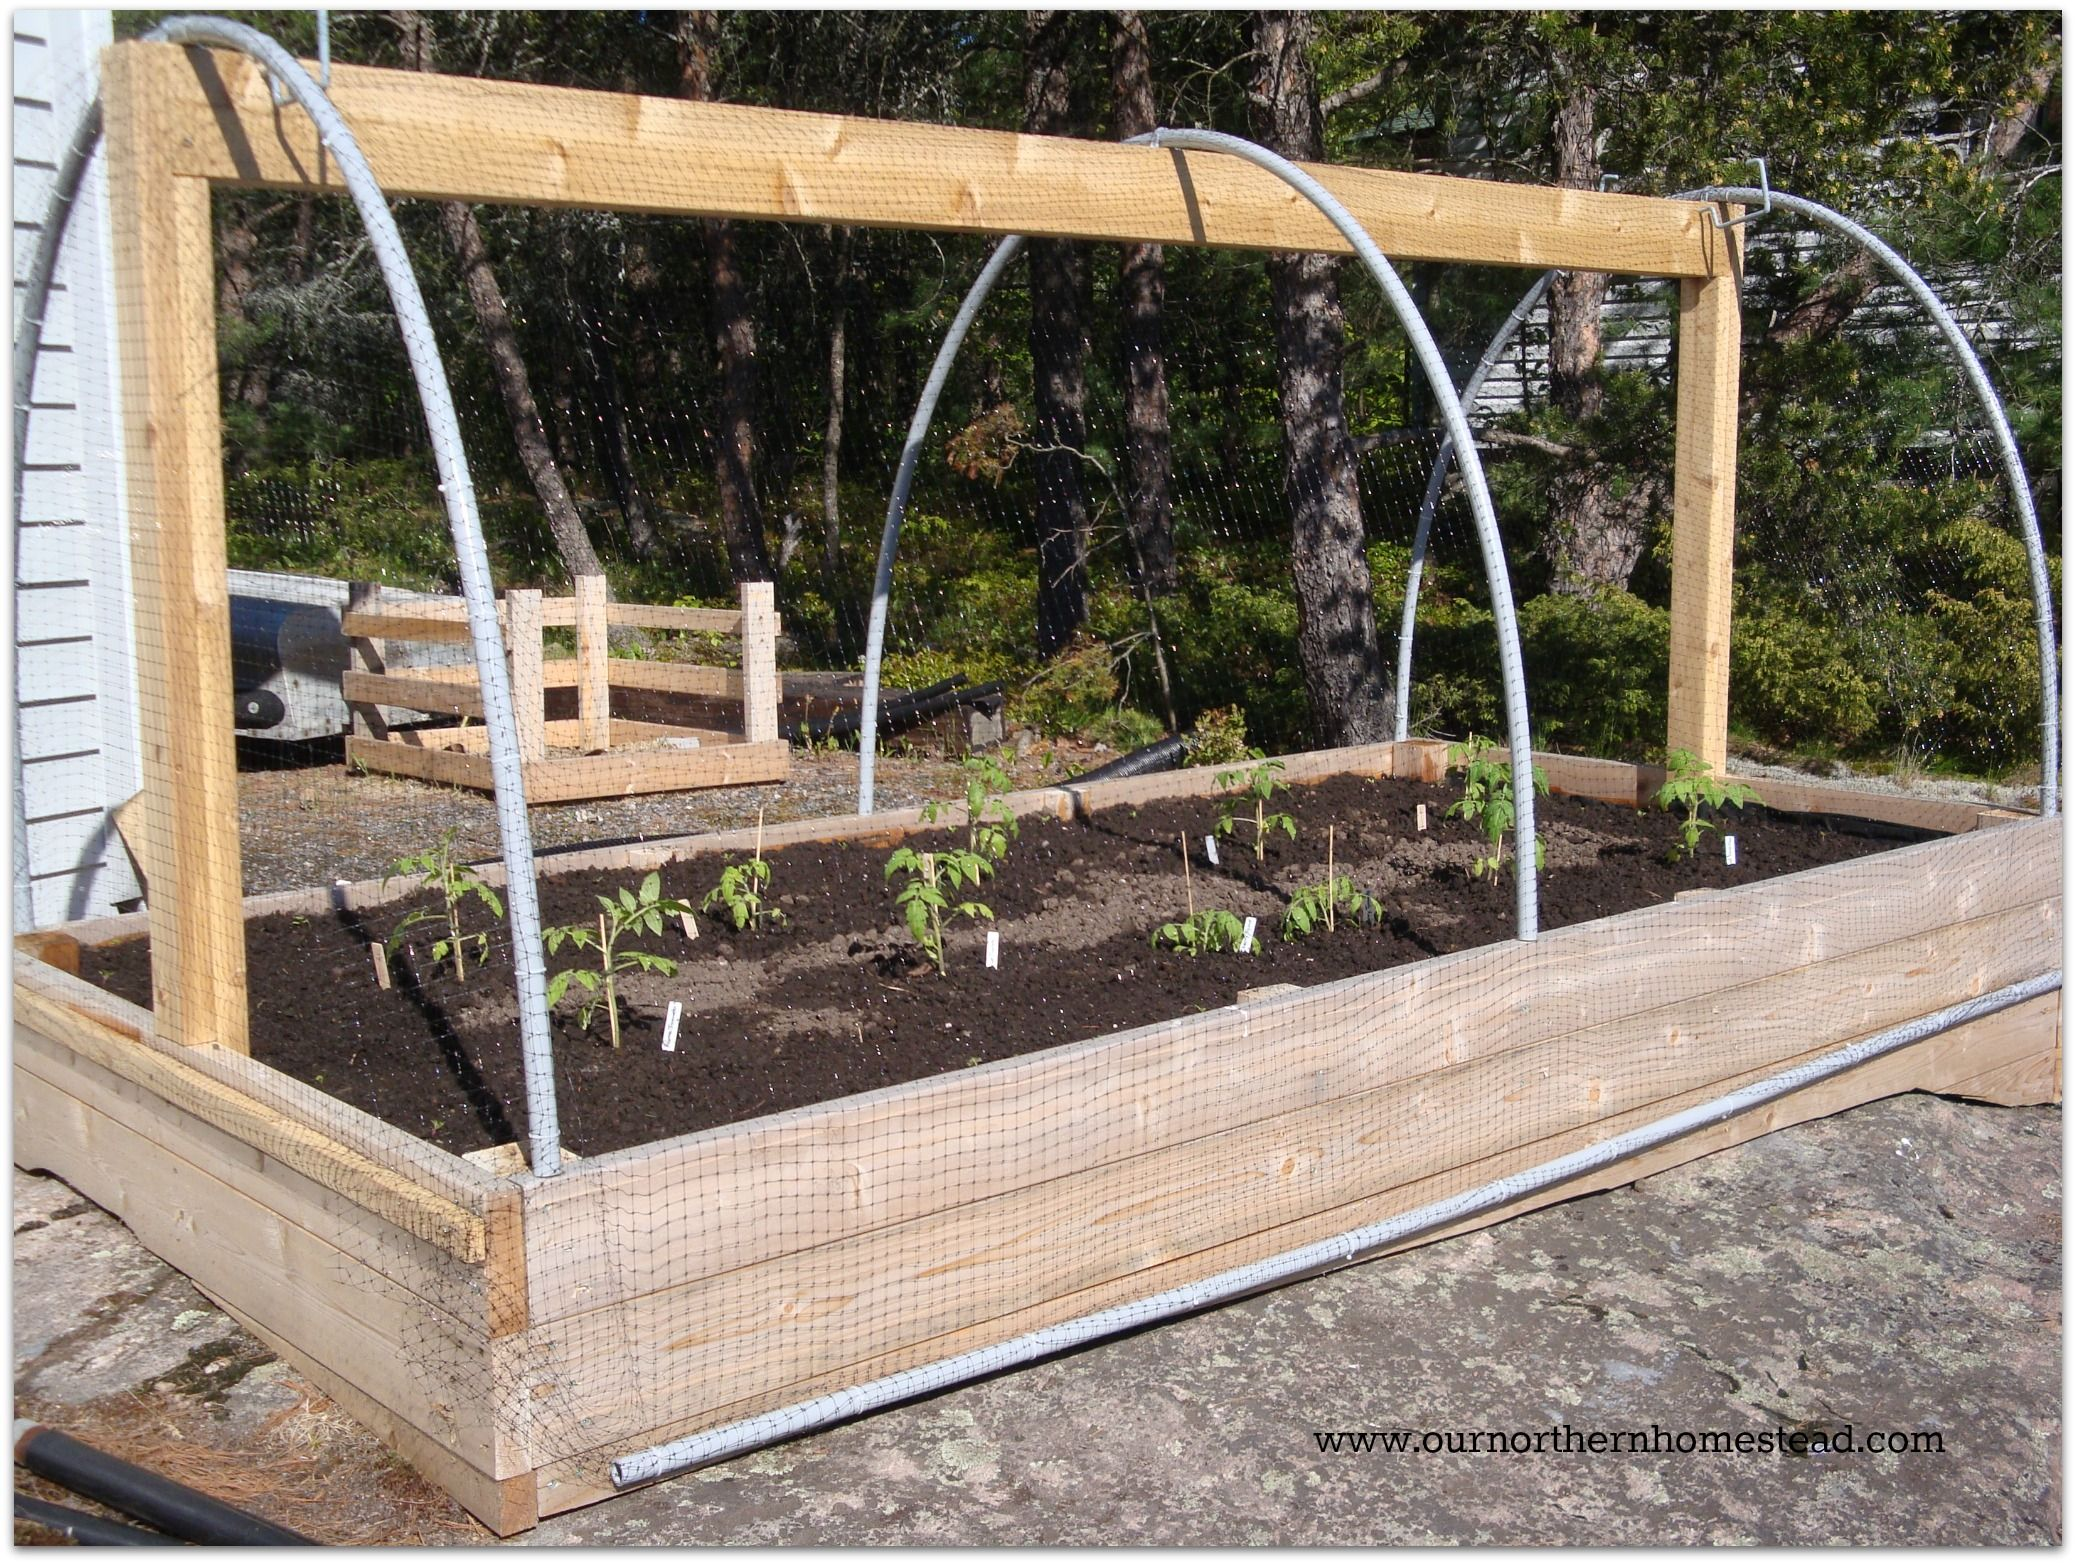 how to deer proof a raised garden bedkeep the deer from turning your veggie garden into a walk thru buffet line